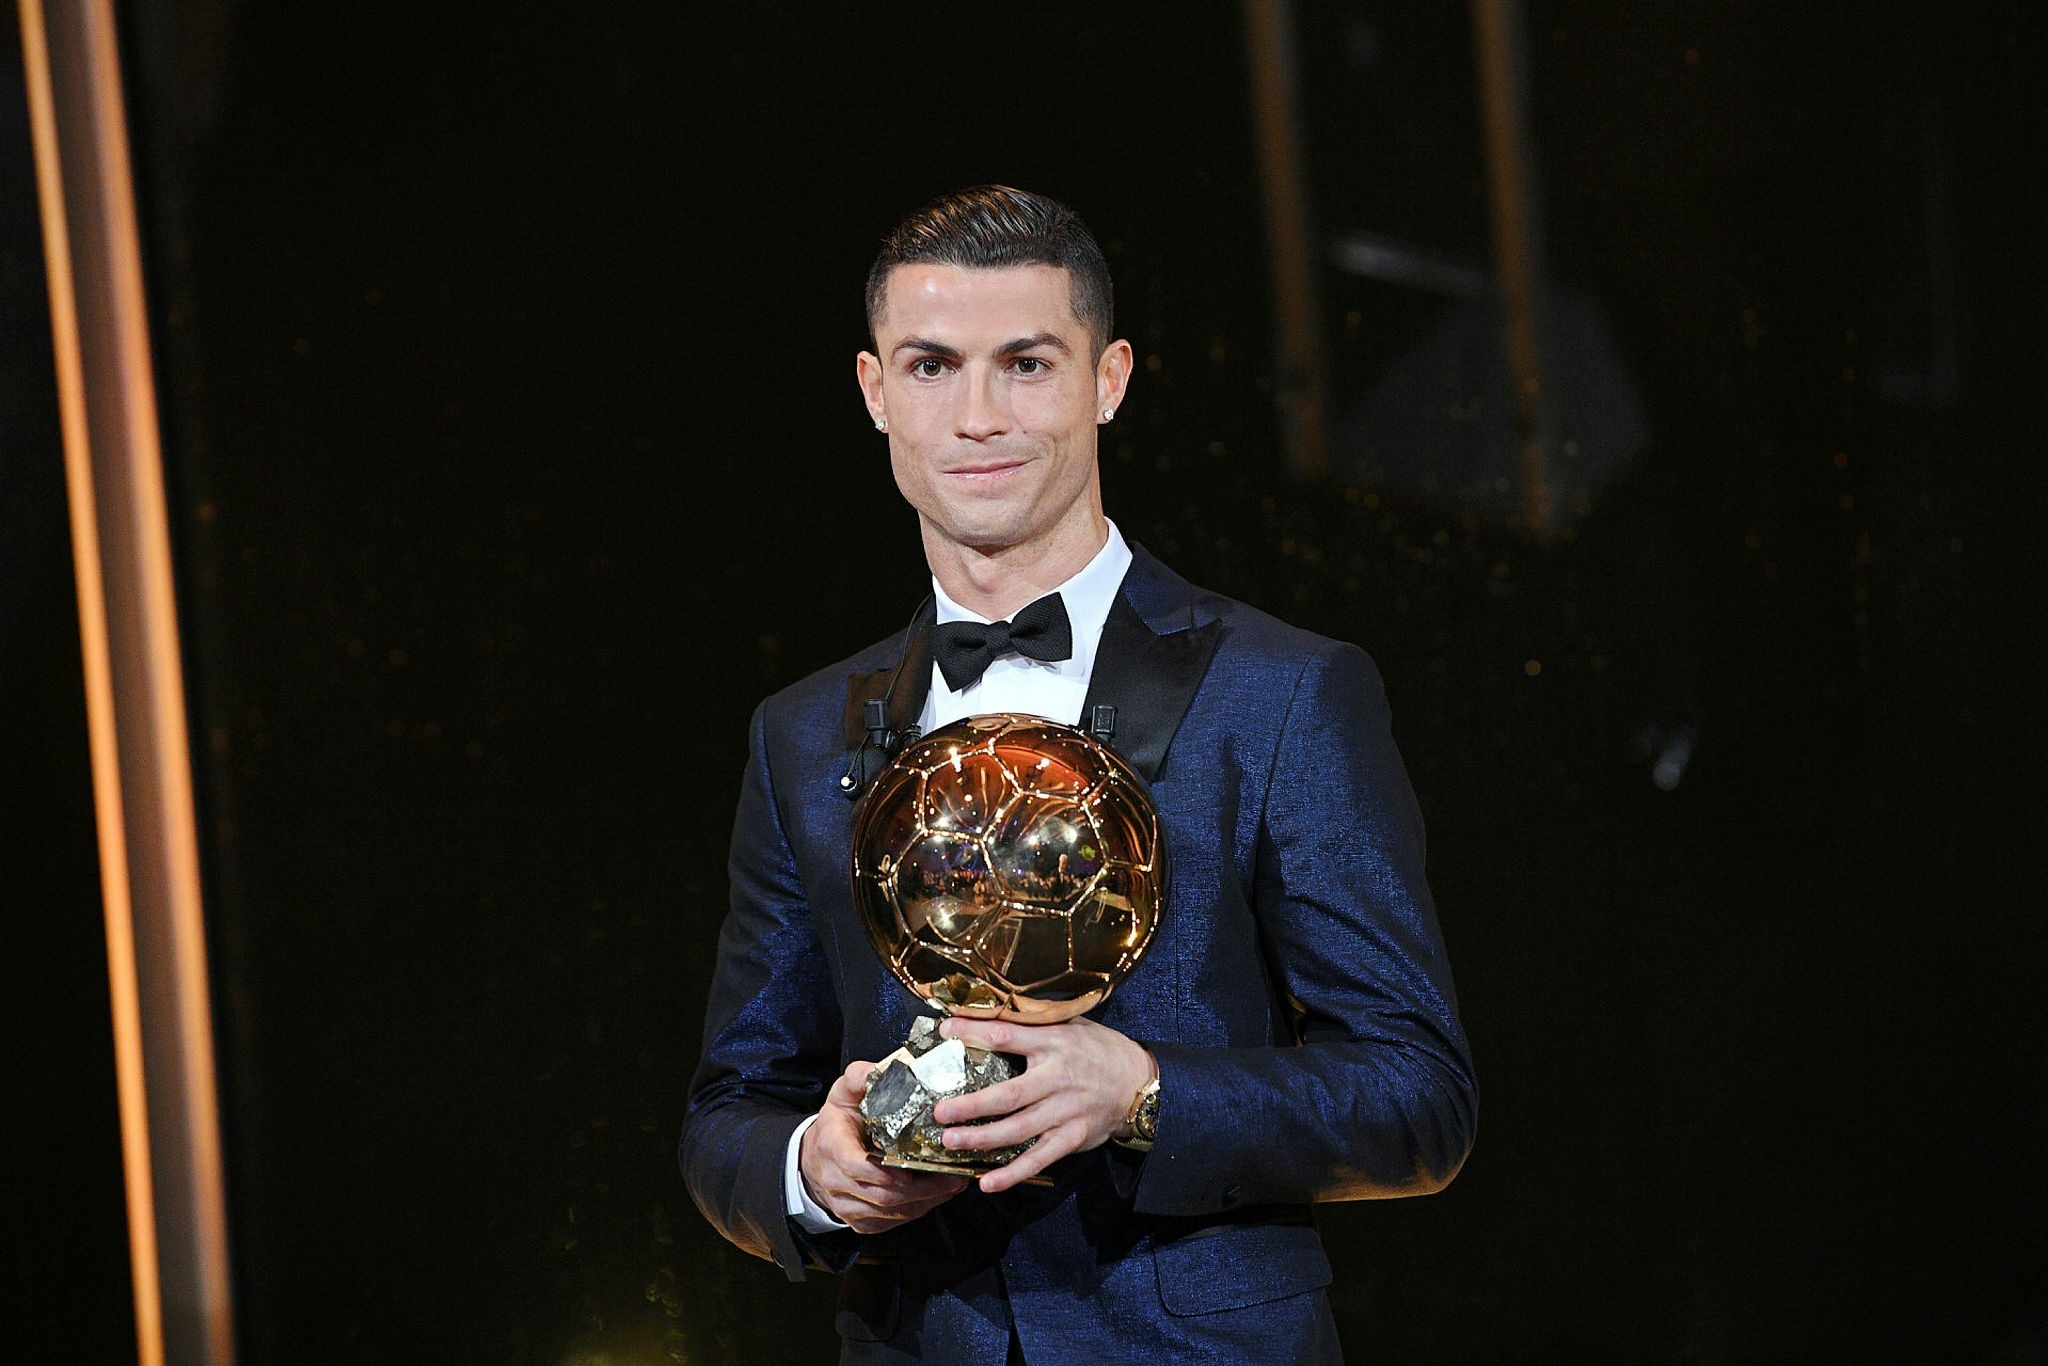 A handout photo made available by the l'Equipe Presse Office on 07 December 2017 of Real Madrid's Portuguese striker Cristiano Ronaldo posing with his trophy after receiving the 62nd Ballon d'Or award in Paris, France, 07 December 2017. (EPA Photo)